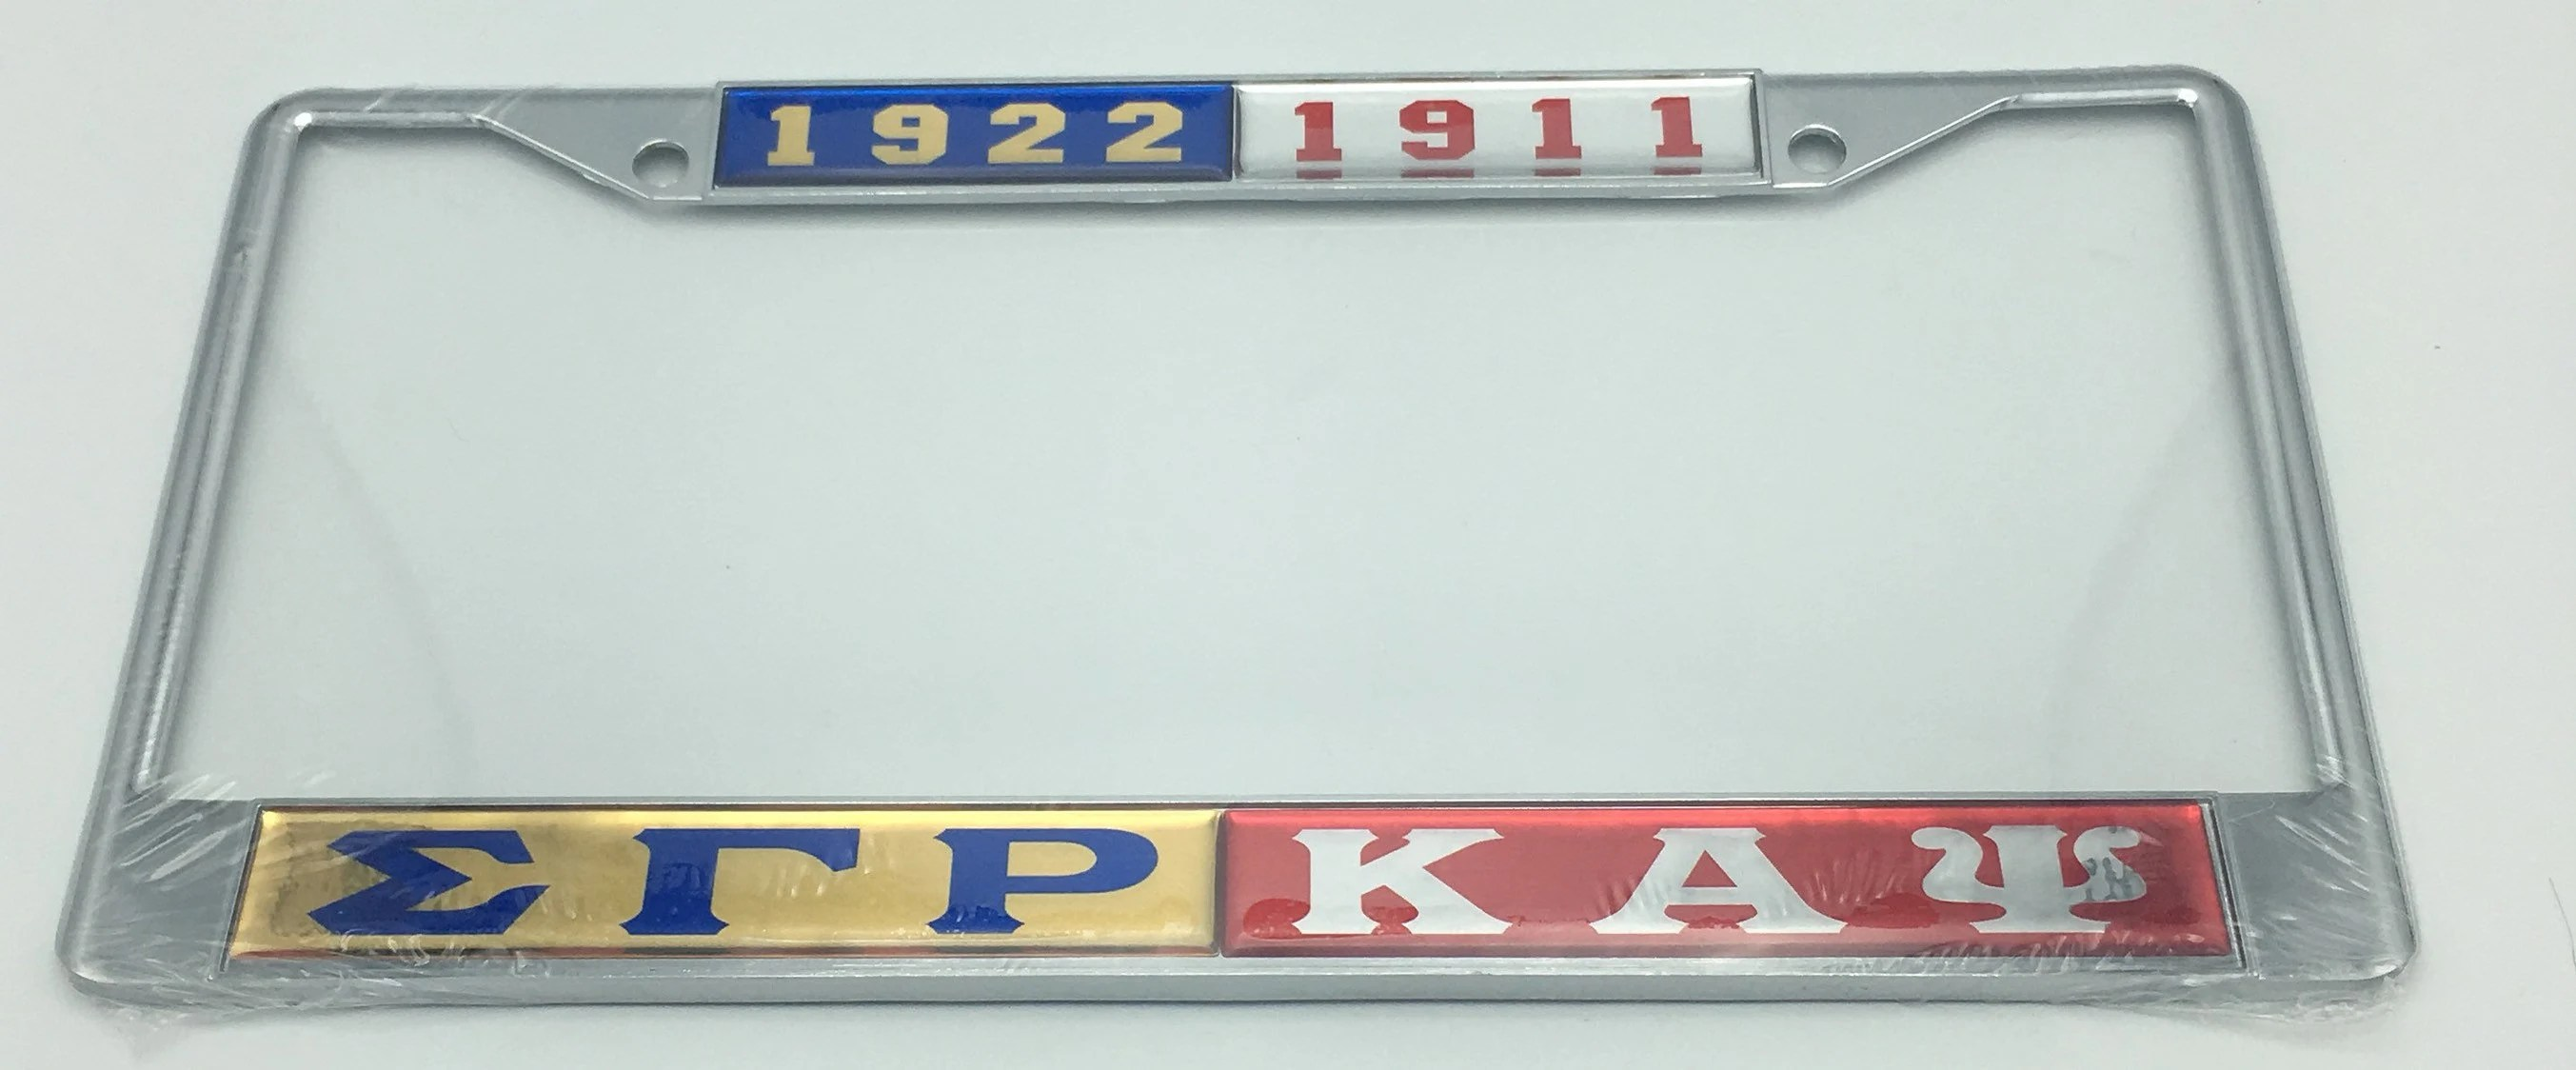 Gamma Split Sigma Gamma Rho Kappa Alpha Psi Split License Plate Fame